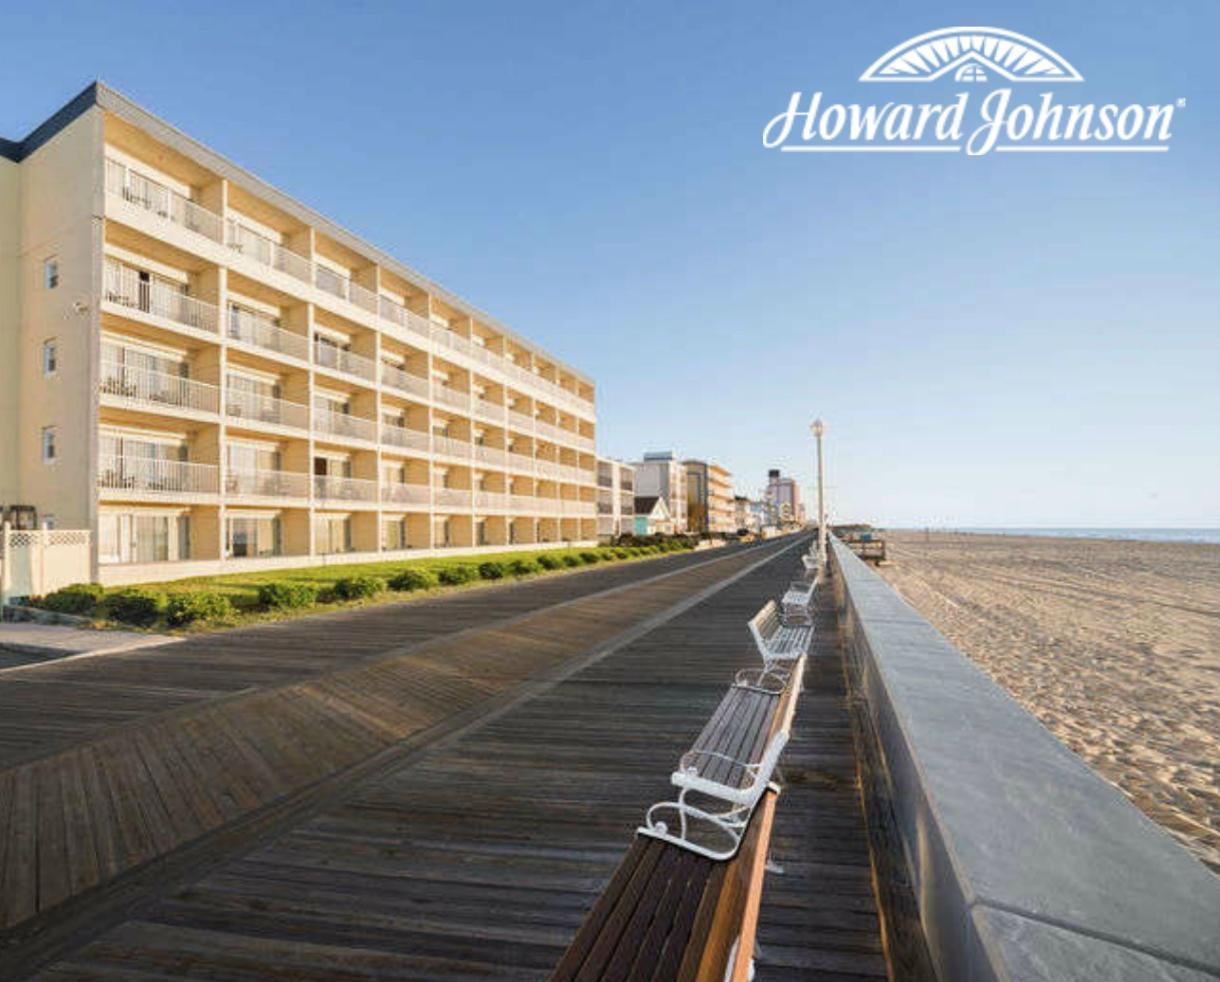 $74+ for One or Two Night Stay at Howard Johnson Oceanfront Inn on the Boardwalk + Thrasher's French Fries - Ocean City, MD (Up to 34% Off)